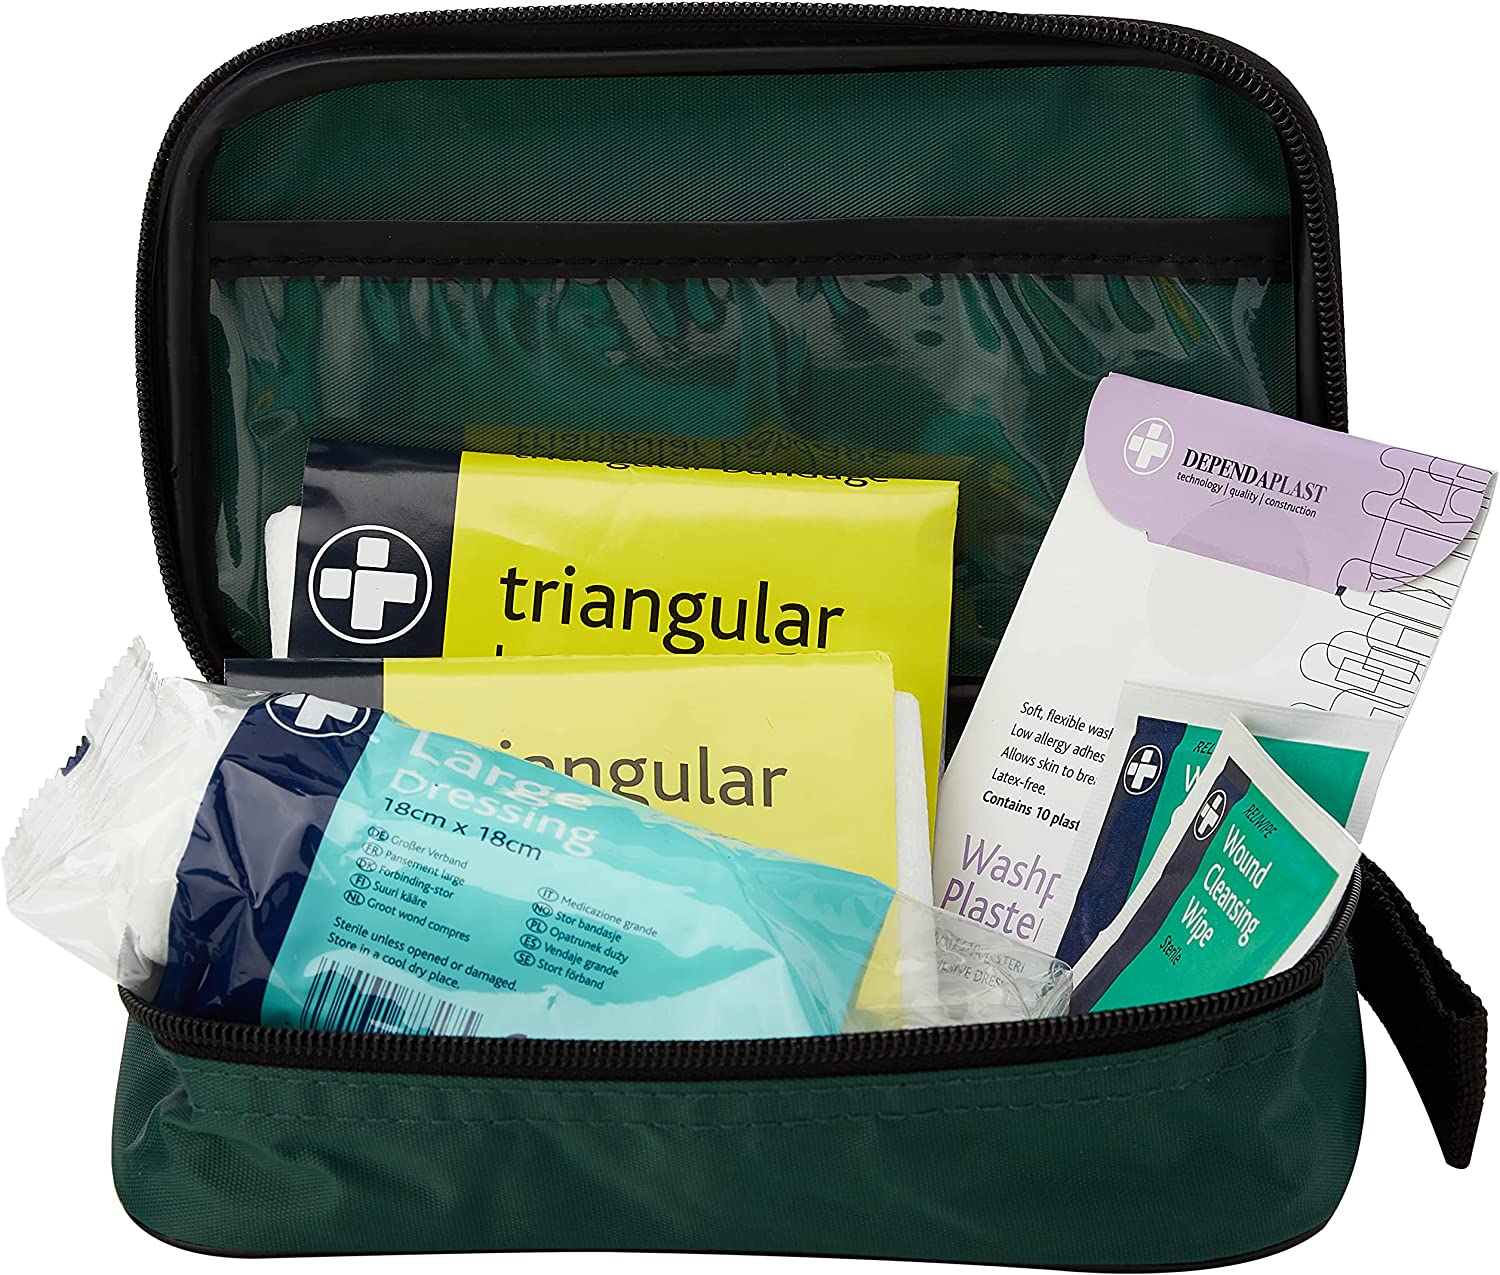 Reliance REL194 Essentials HSE 1 Person First Aid Kit, Riga Bum Bag: Health & Personal Care